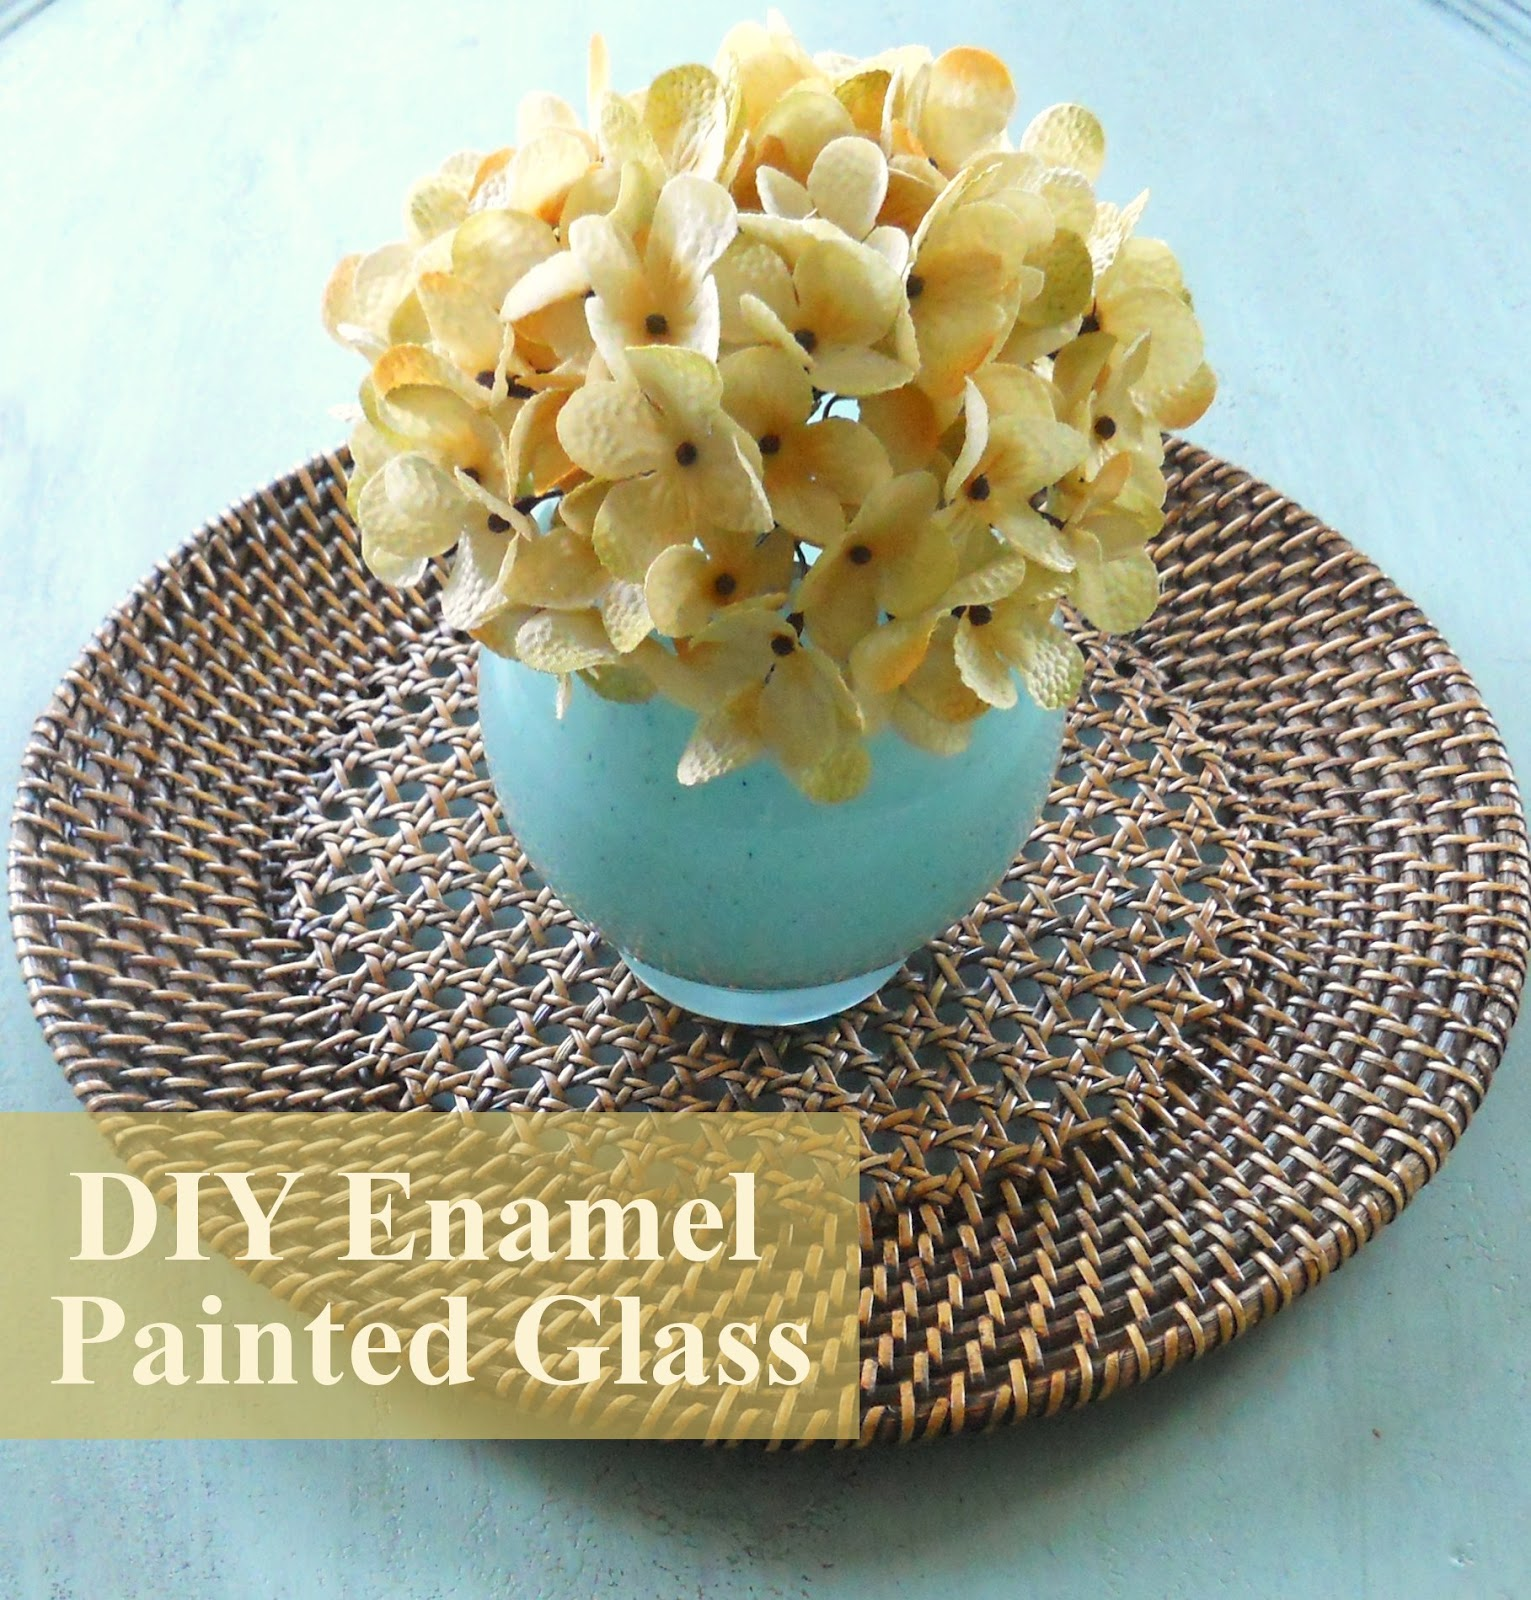 diy-enamel-painted-glass